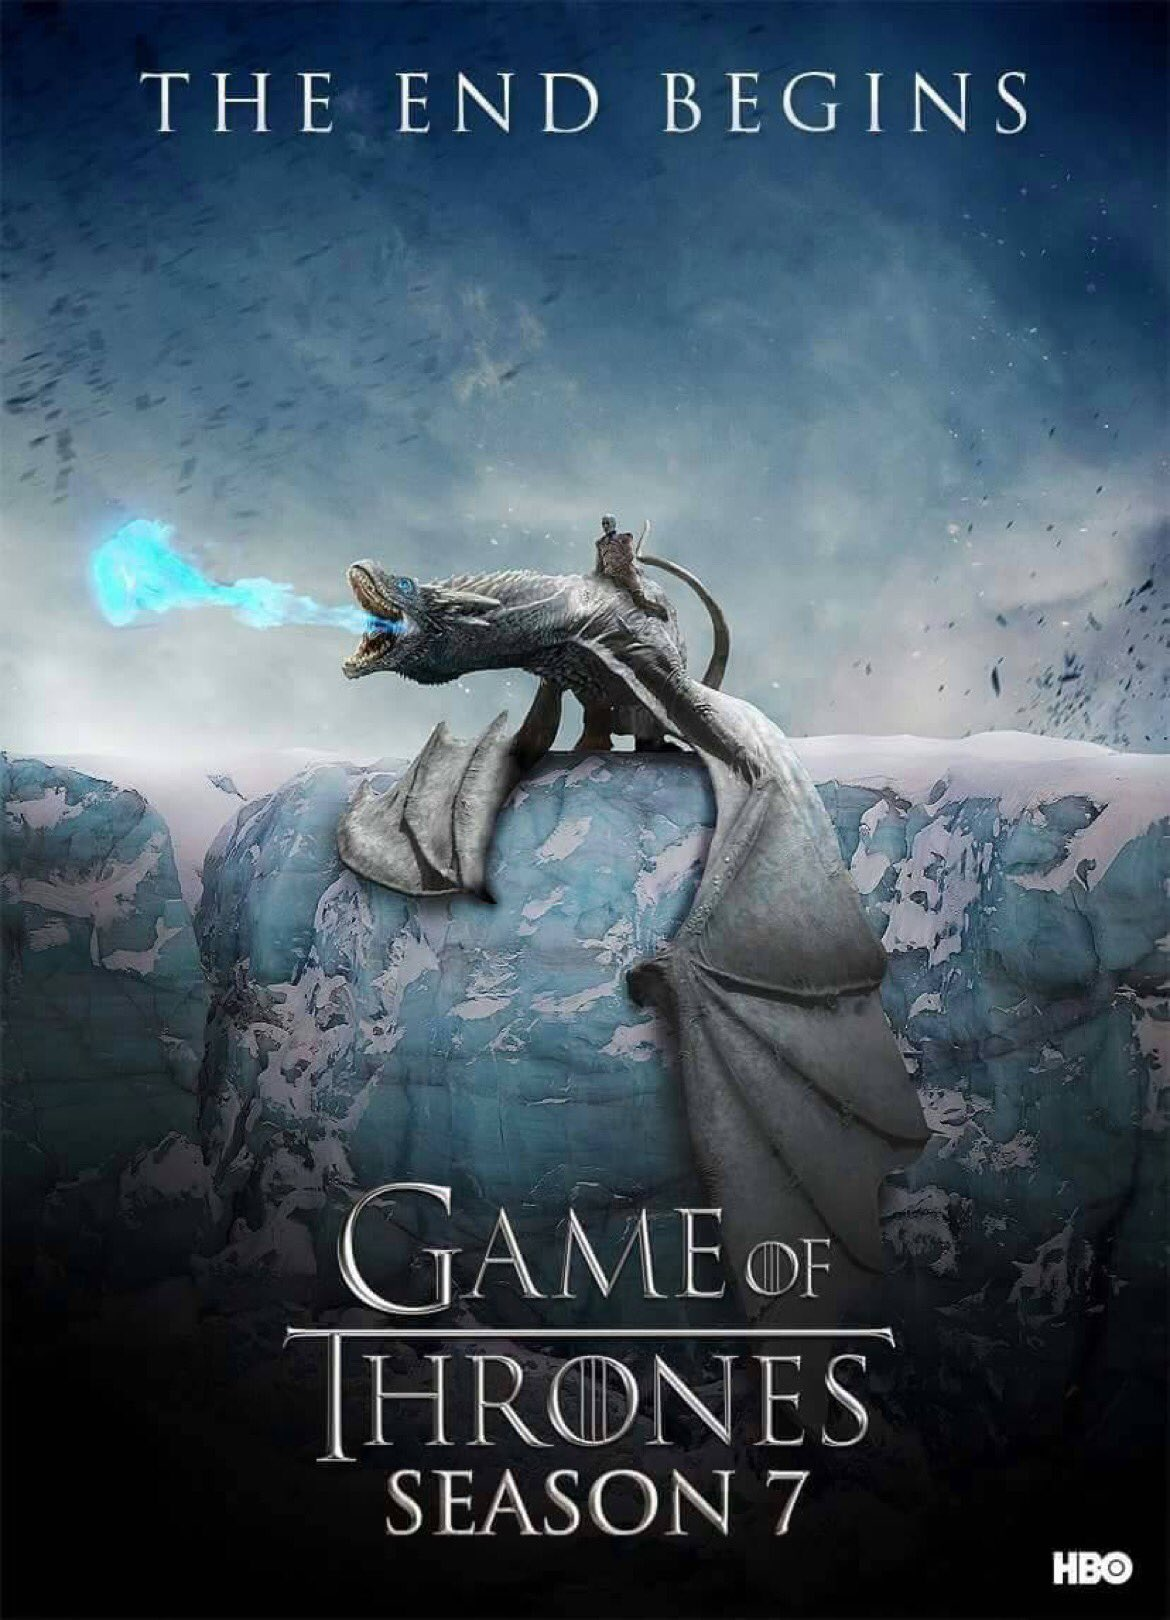 The Night King and Viserion - GoT Season 7 Fan Poster